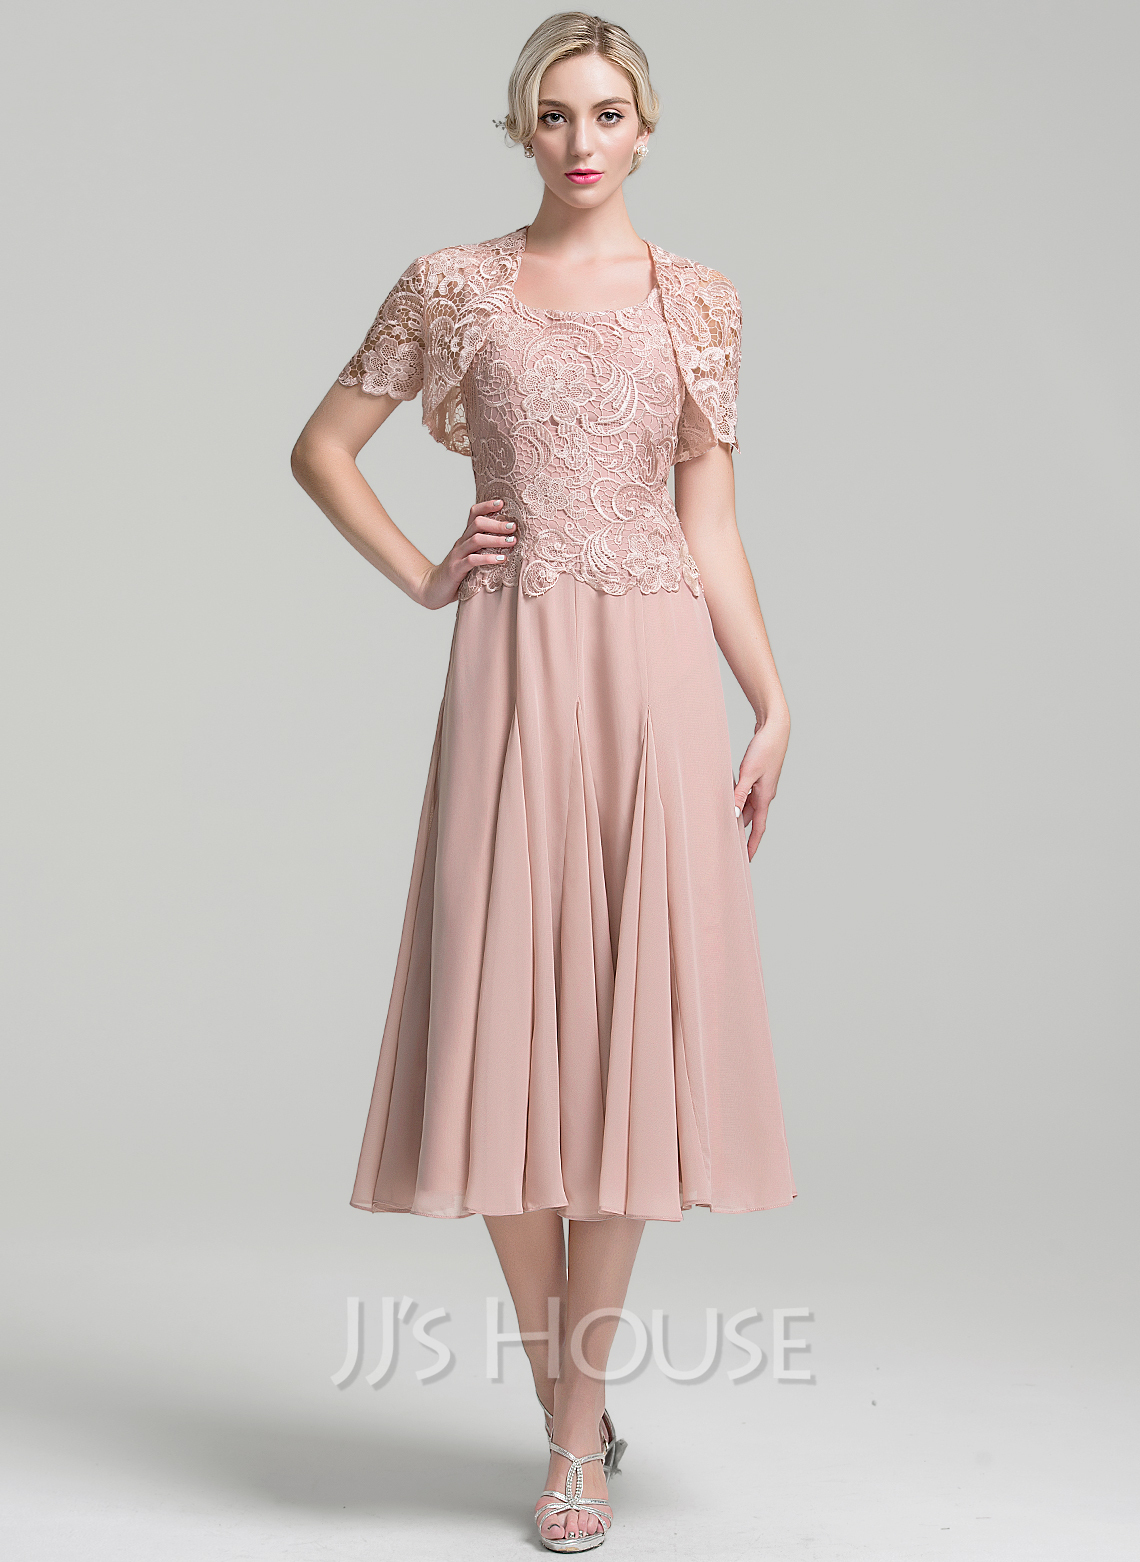 A Line Princess Square Neckline Tea Length Chiffon Mother Of The Bride Dress g jjs house wedding dresses Loading zoom